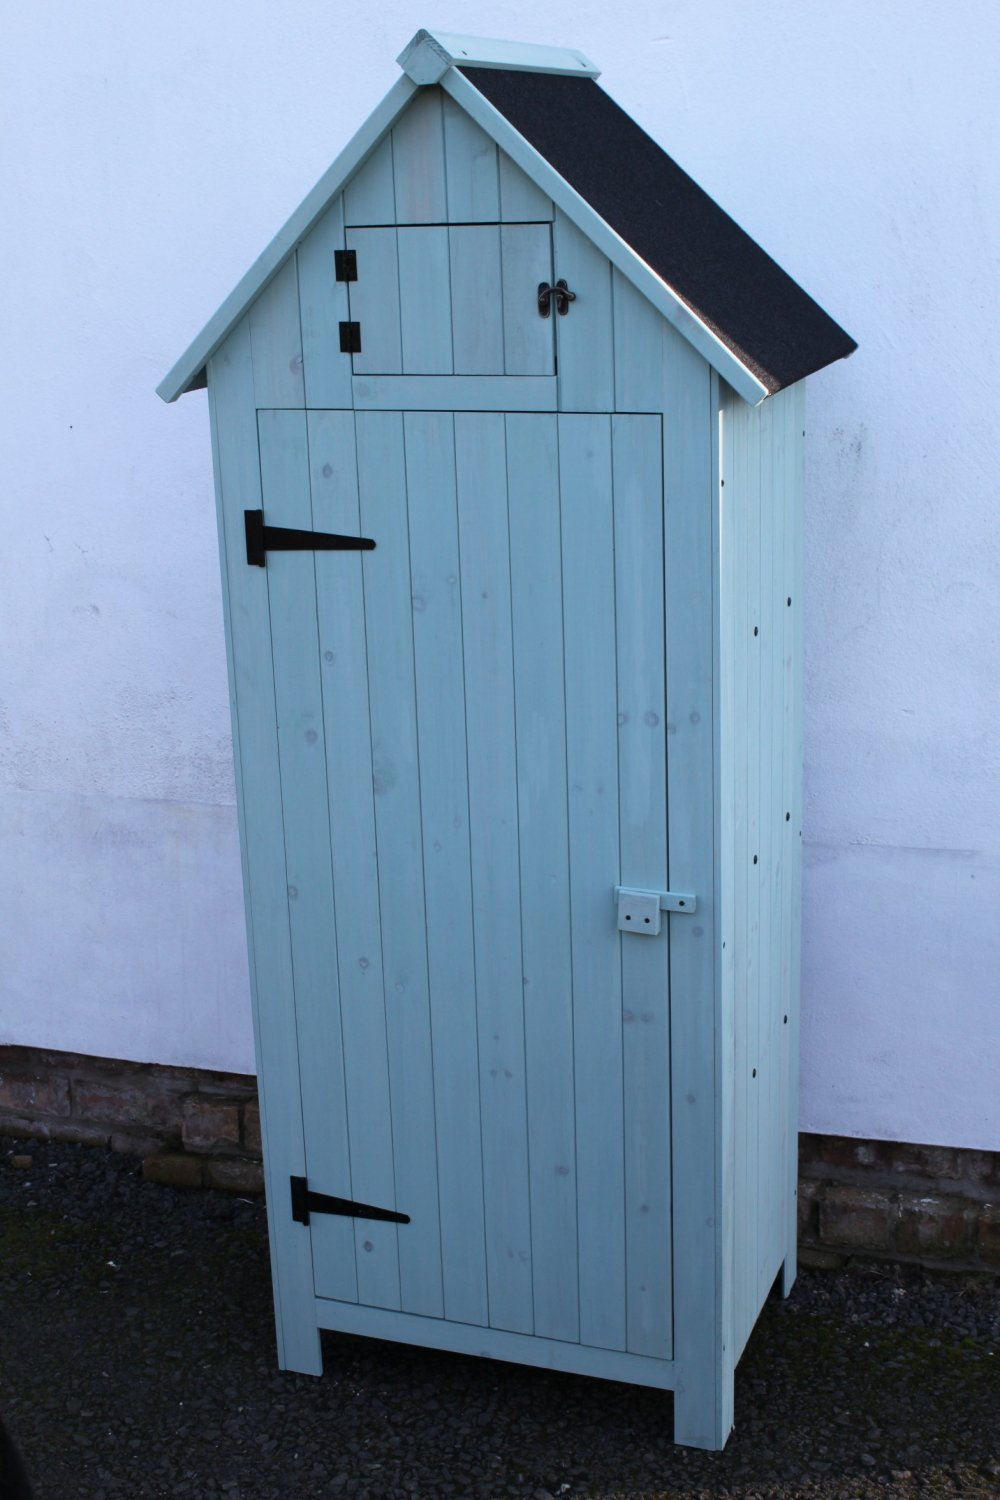 Outdoor Brighton Garden Wooden Storage Cabinet or Tool Shed In Blue/Green Garden Market Place